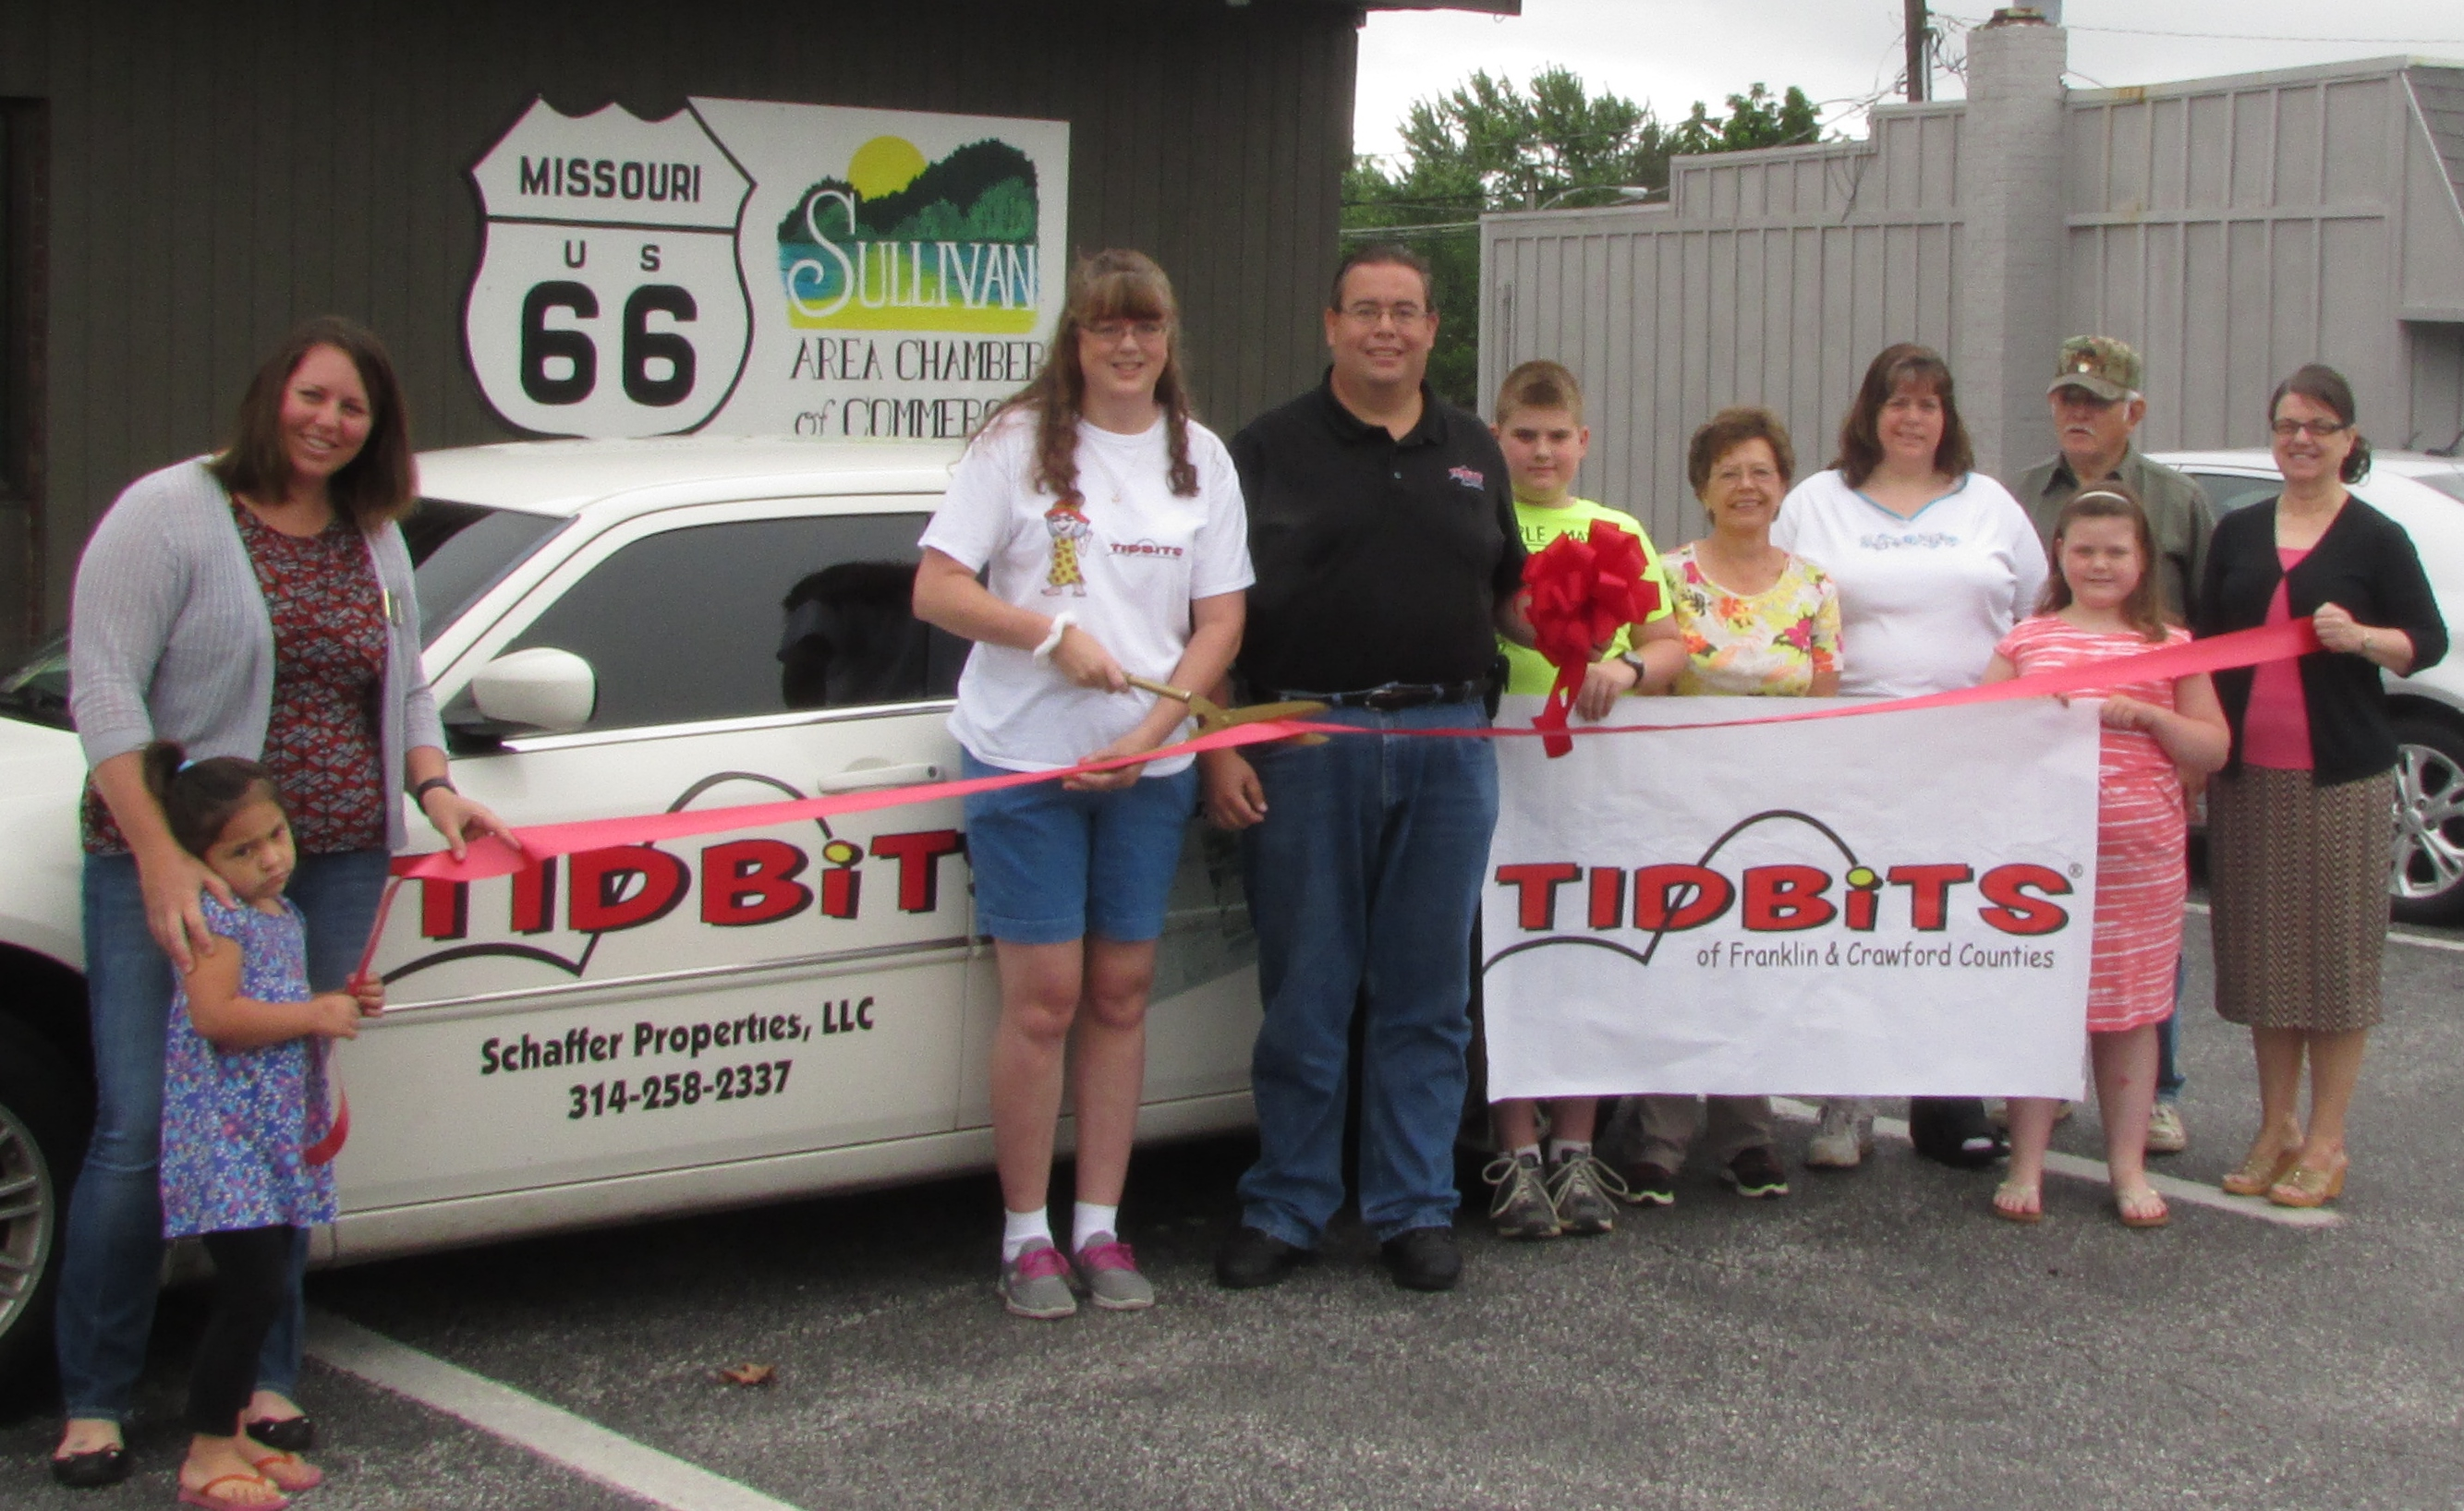 Tidbits Ribbon Cutting